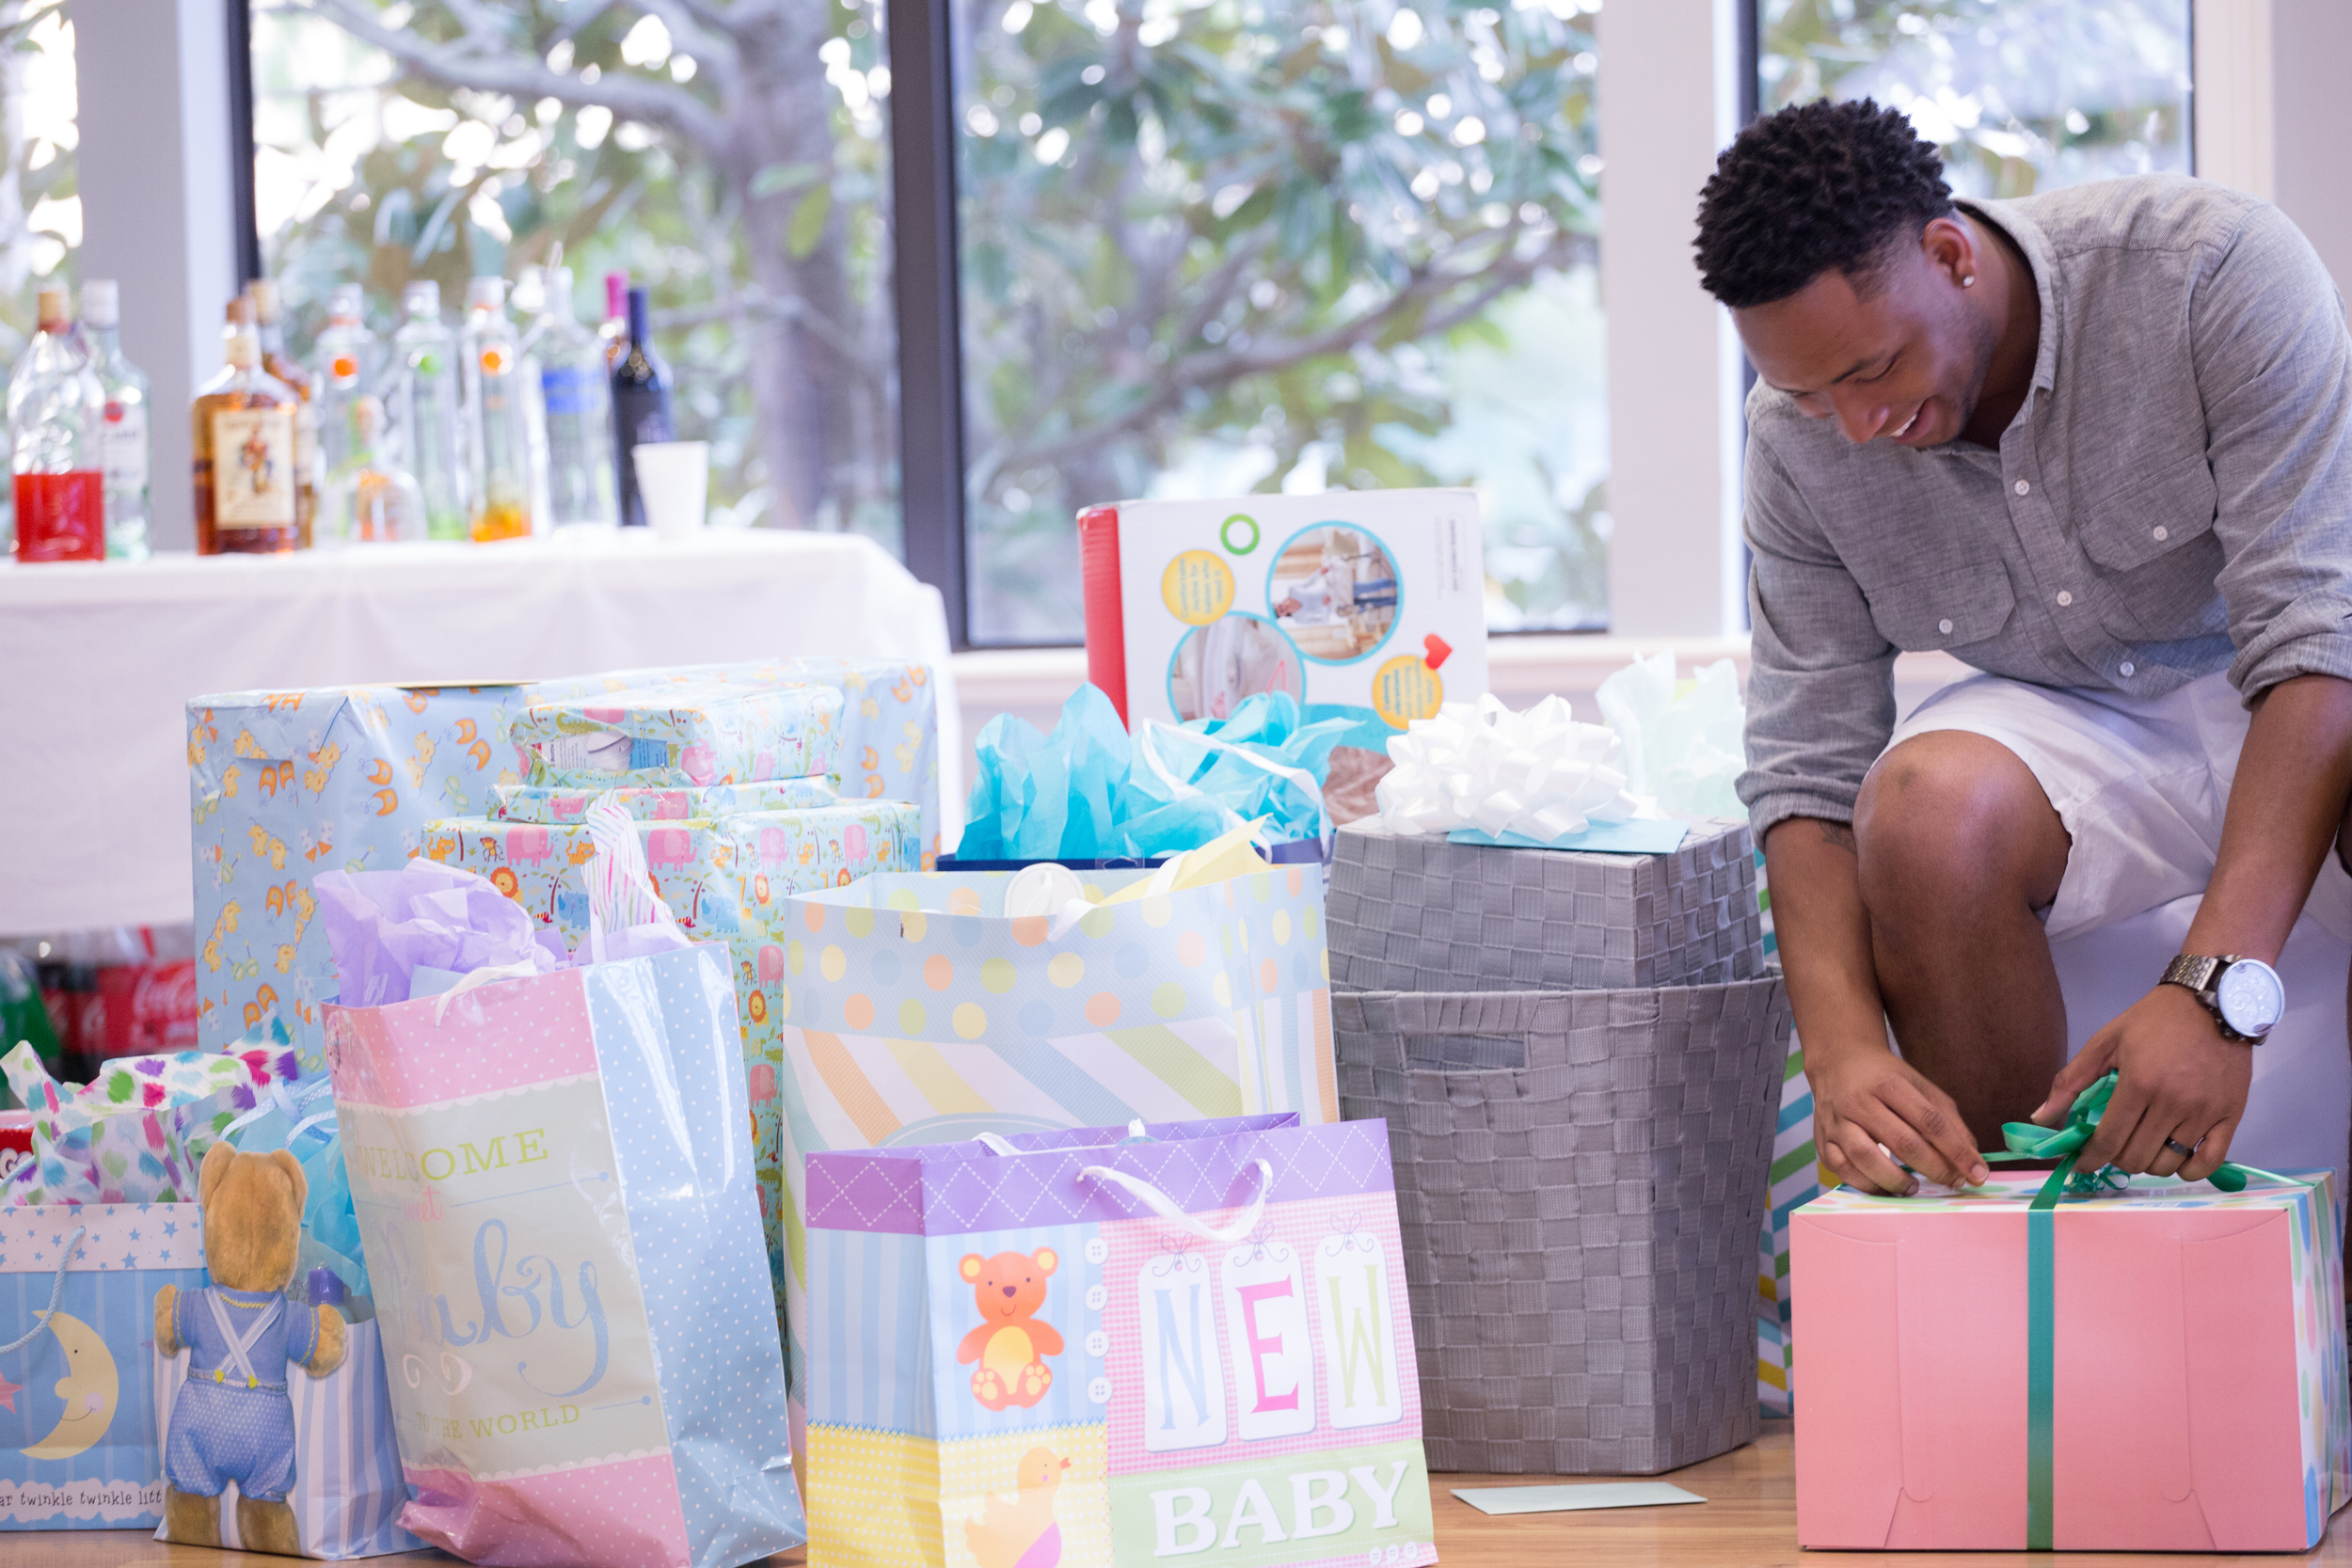 chamber-photography-moments-chamber-gifts-baby-shower.jpg